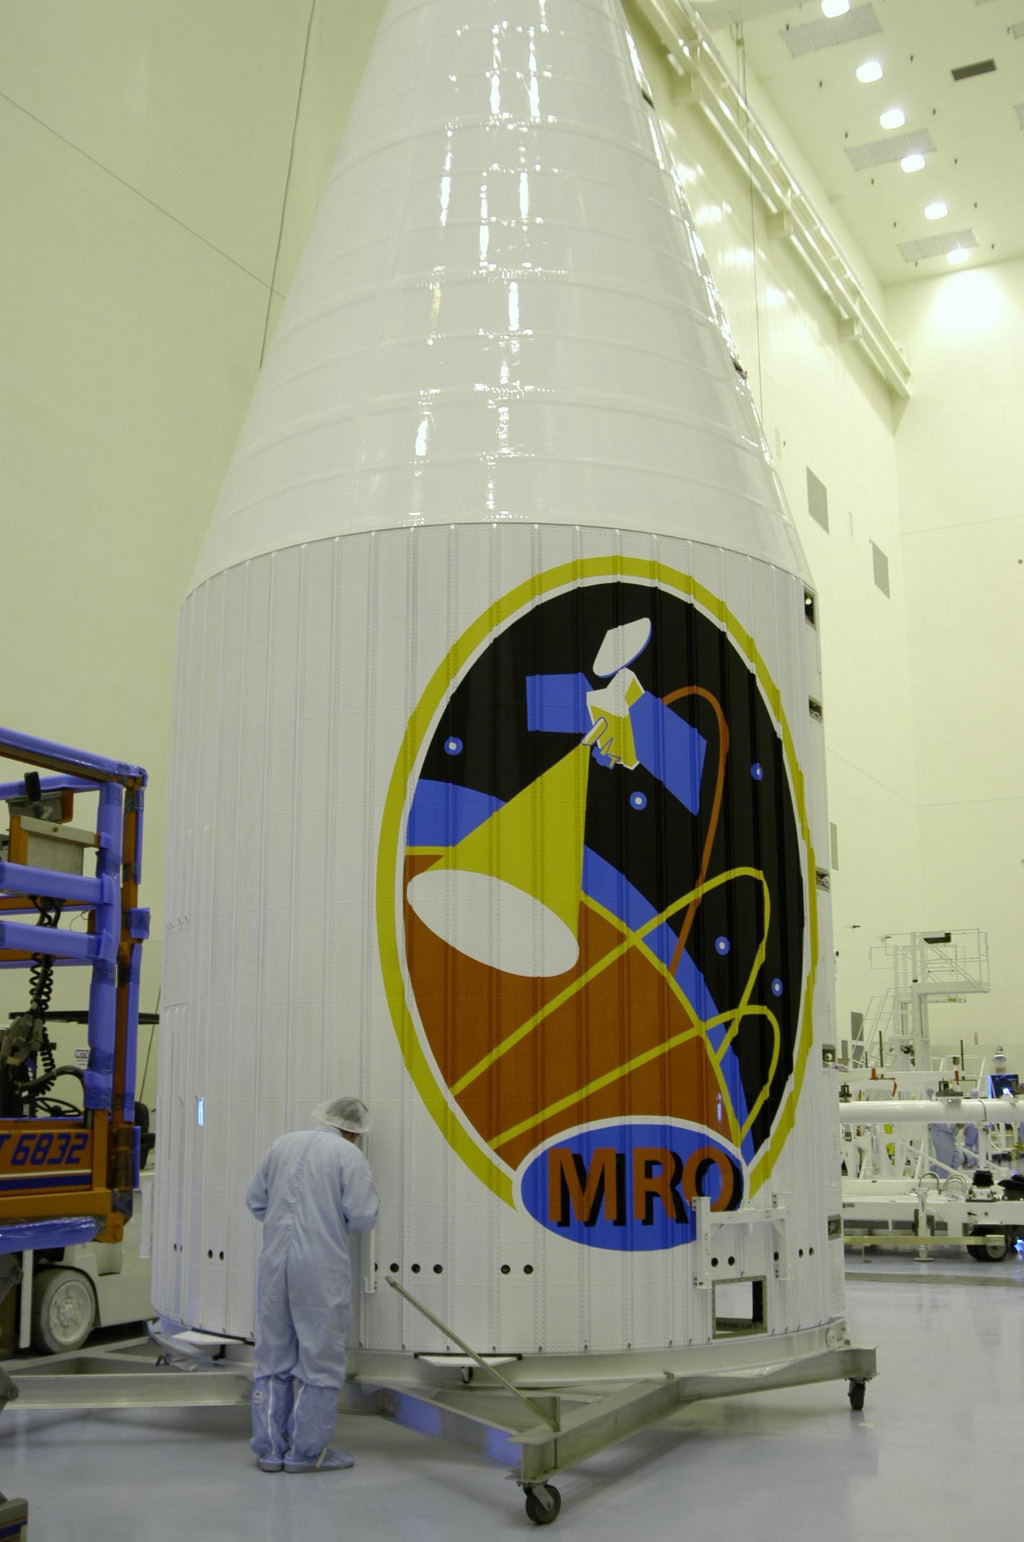 This image features the protective fairing that encapsulated NASA's Mars Reconnaissance Orbiter atop an Atlas V rocket. The lively logo celebrates the intense science mission ahead of the orbiter.